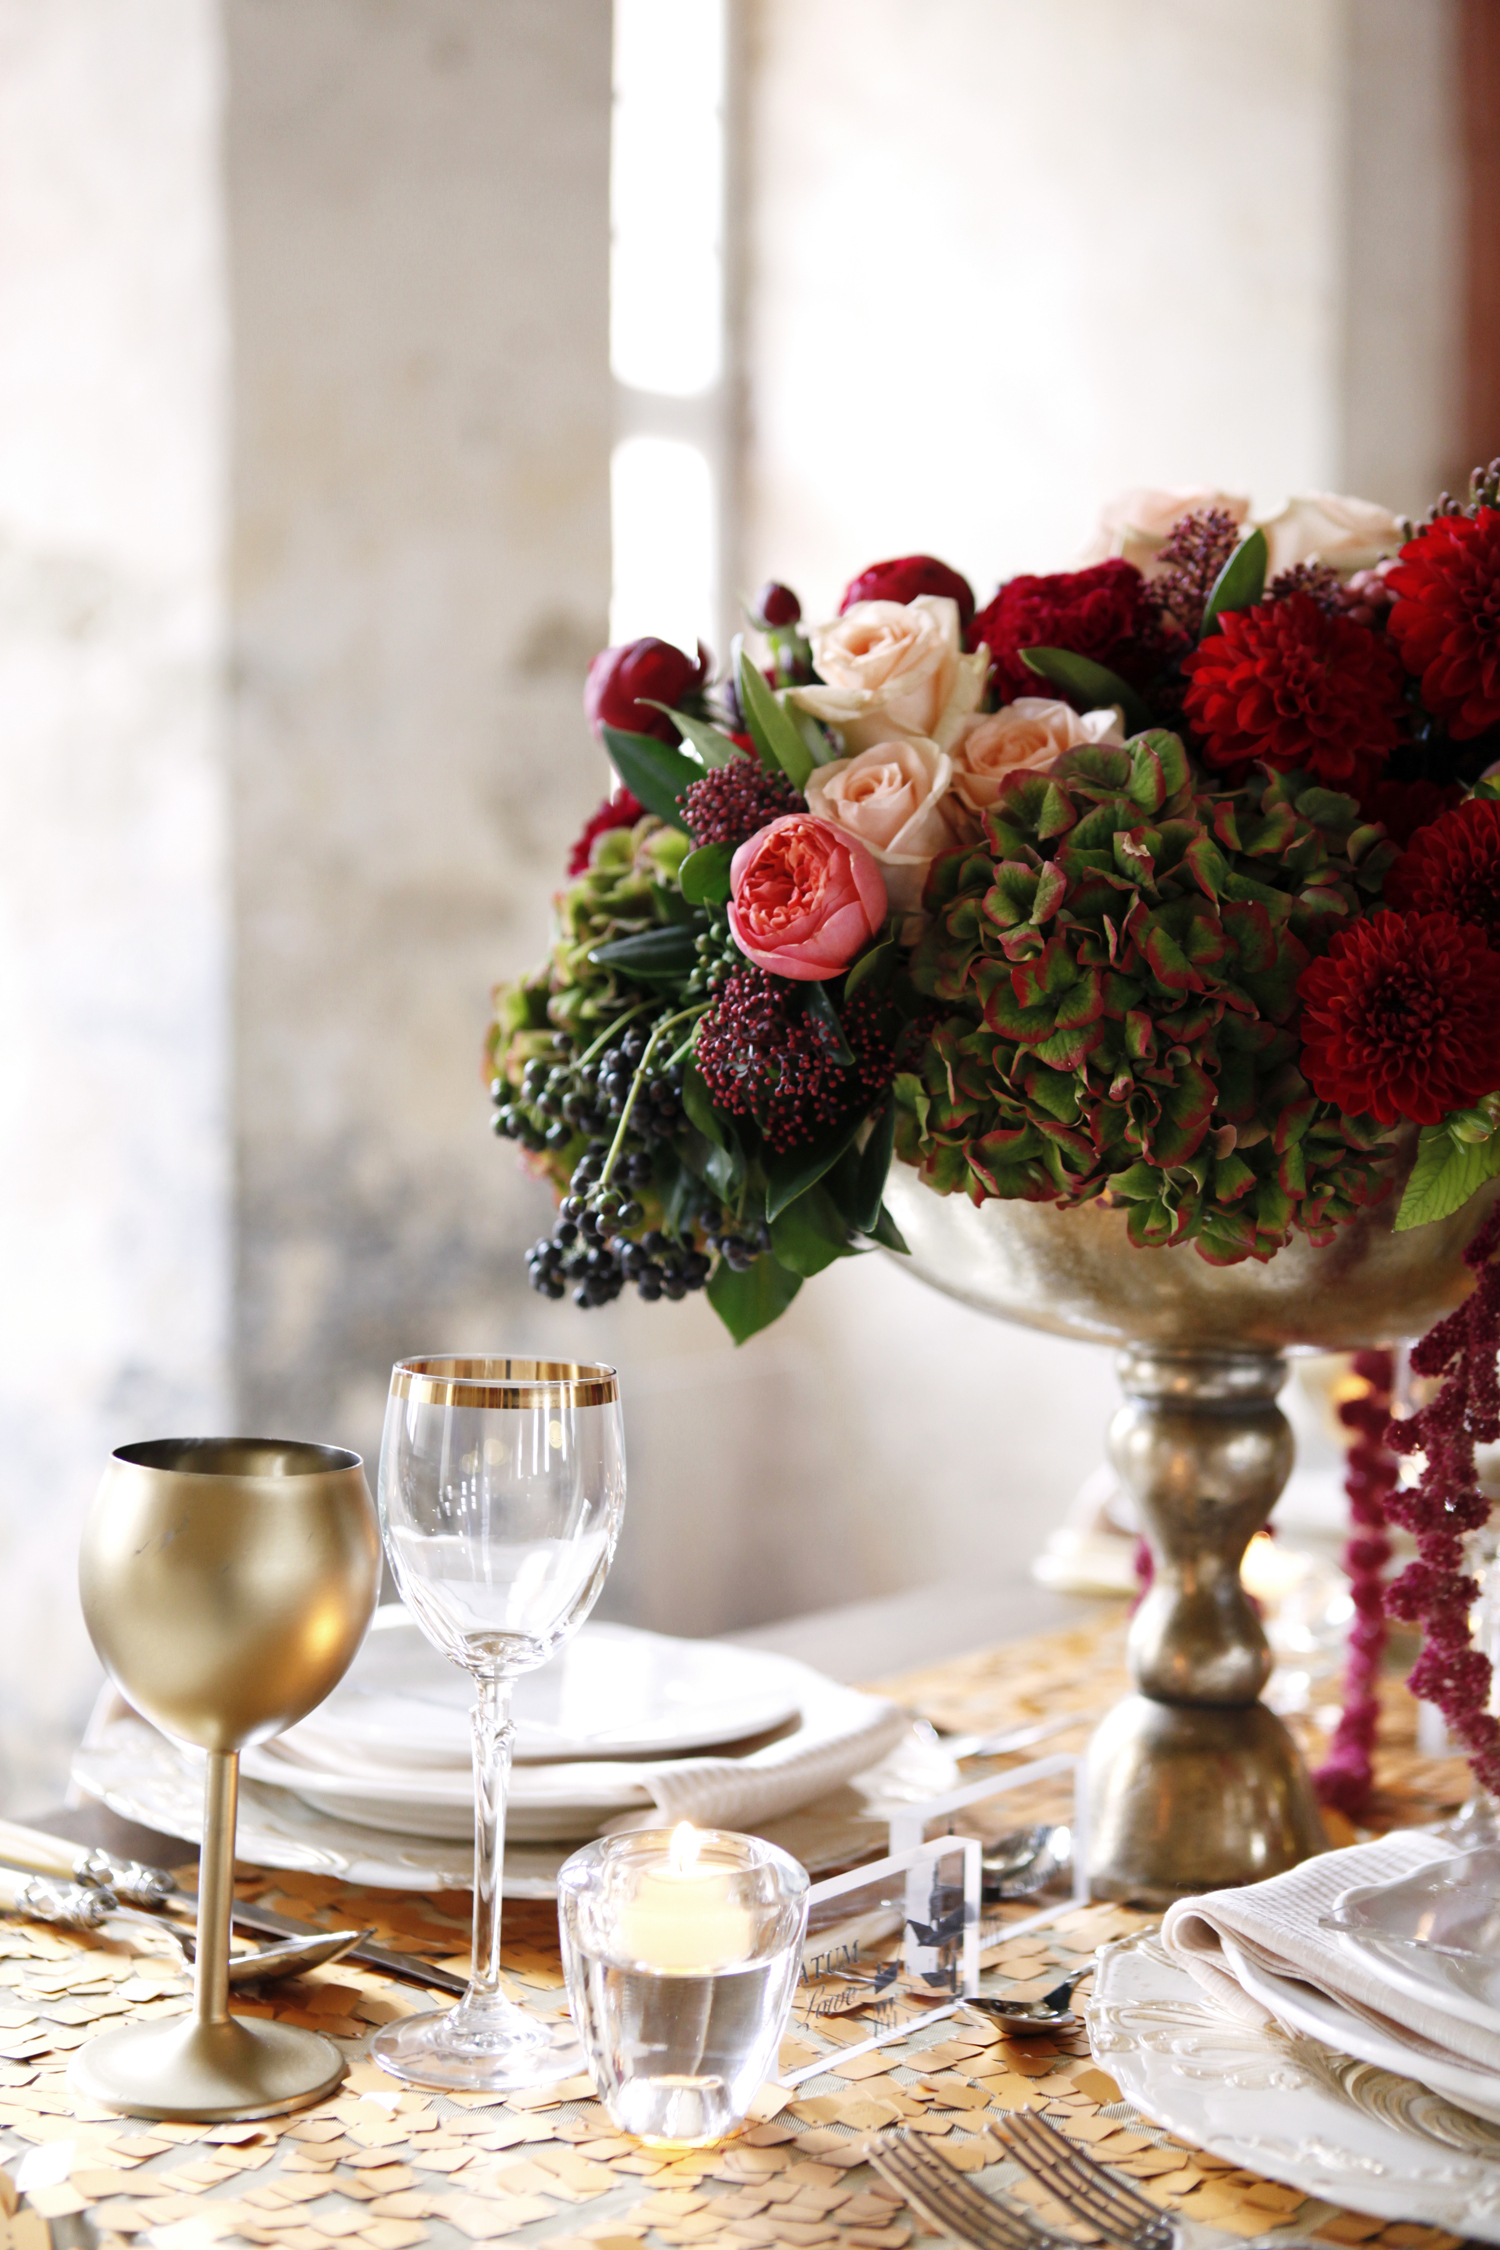 burgundy, blush, and gold flower centerpiece for Wedding Style Shoot in Kloster Eberbach, Germany, designed by Flora Nova Design, Seattle